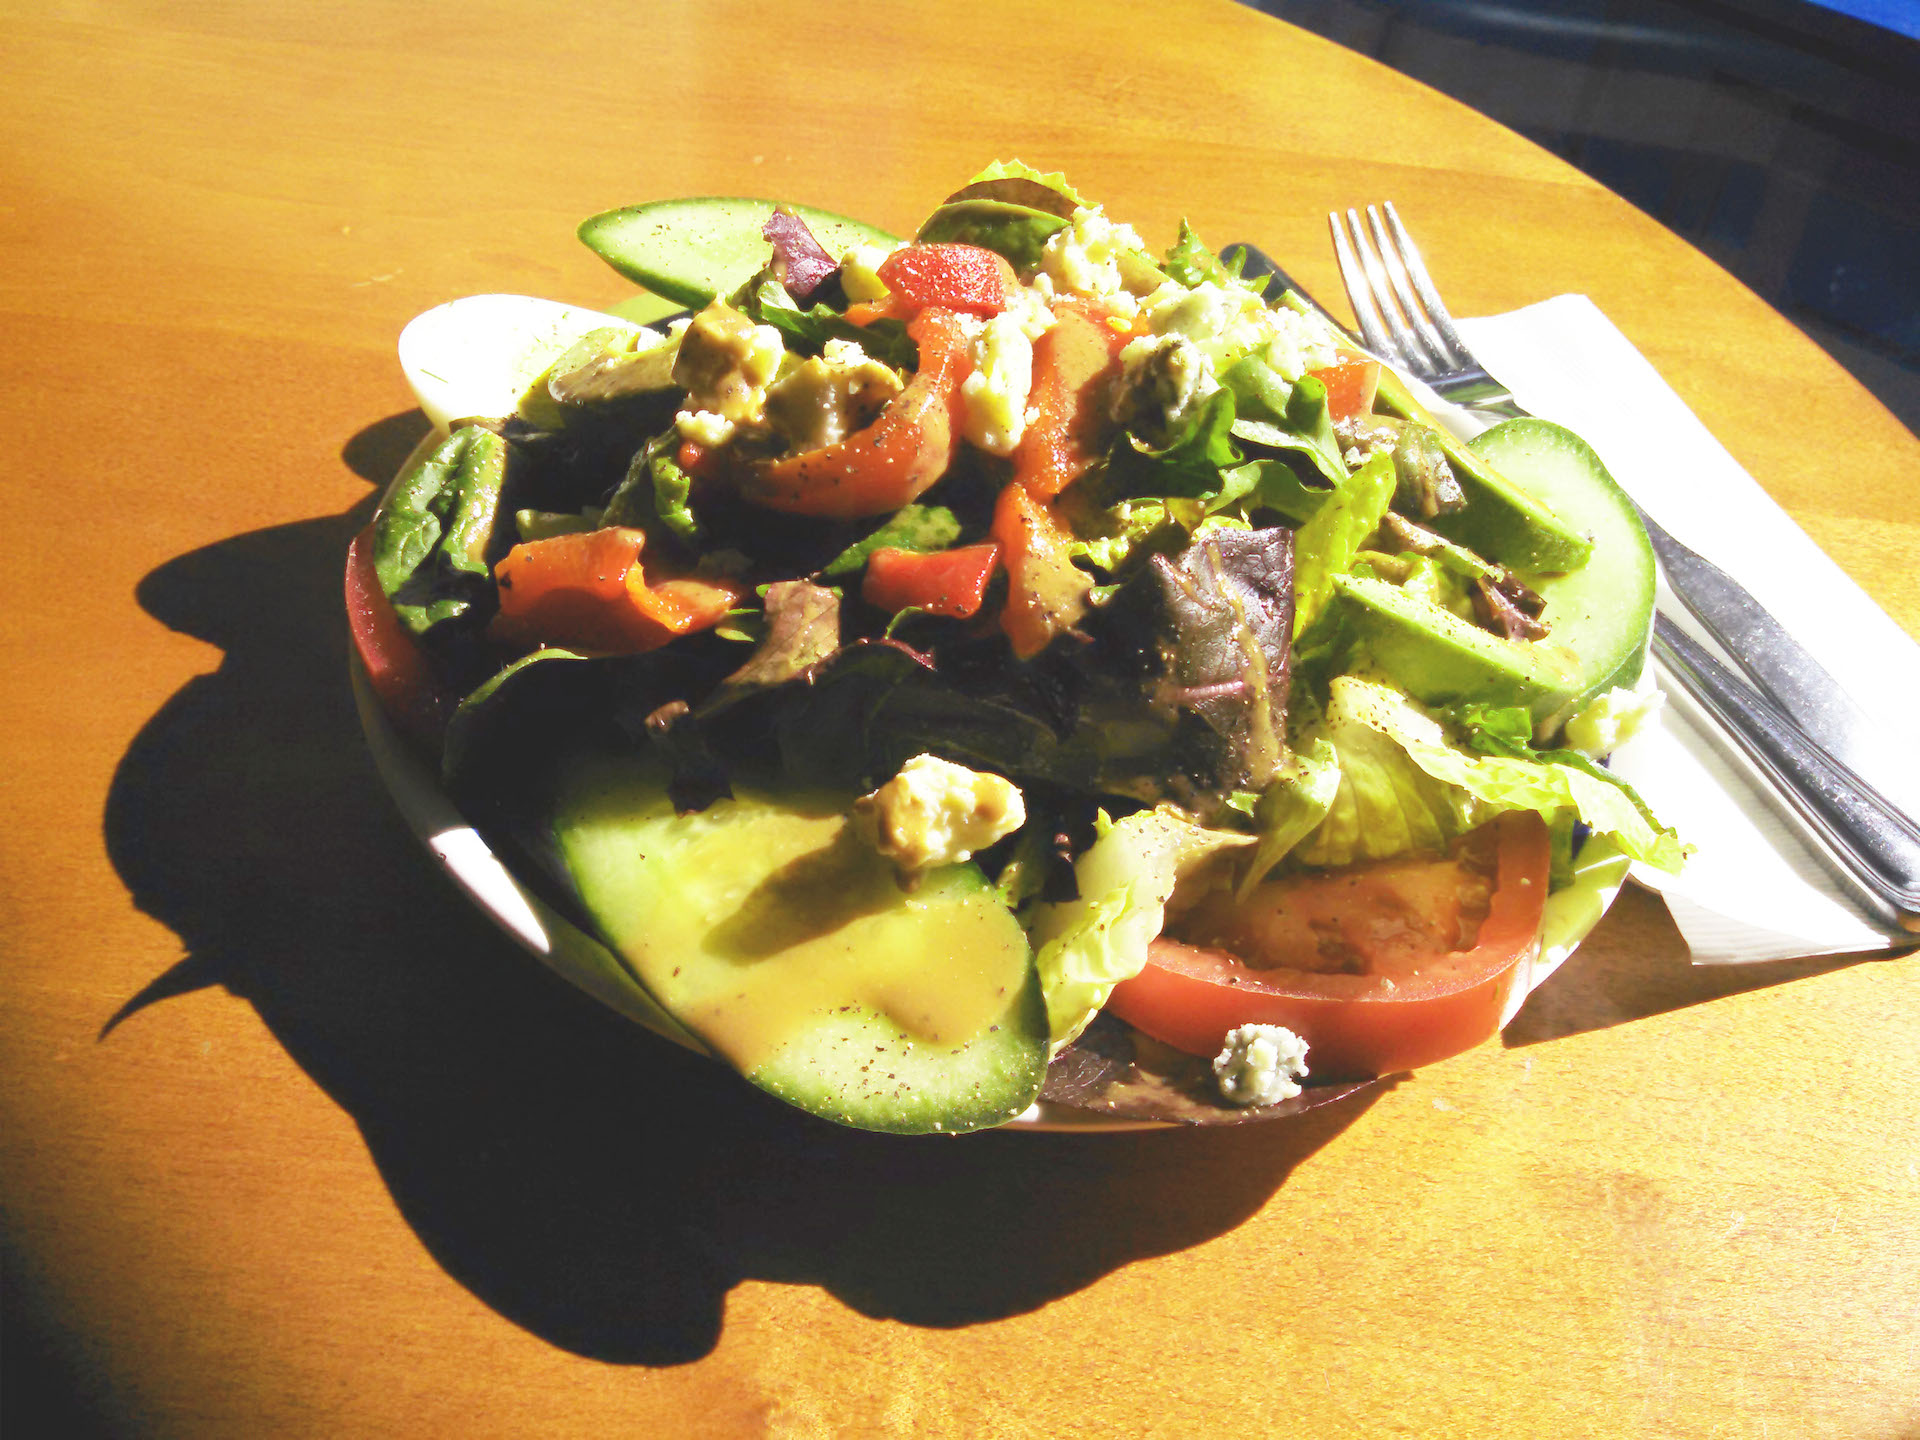 The Maison salad in the setting sunlight